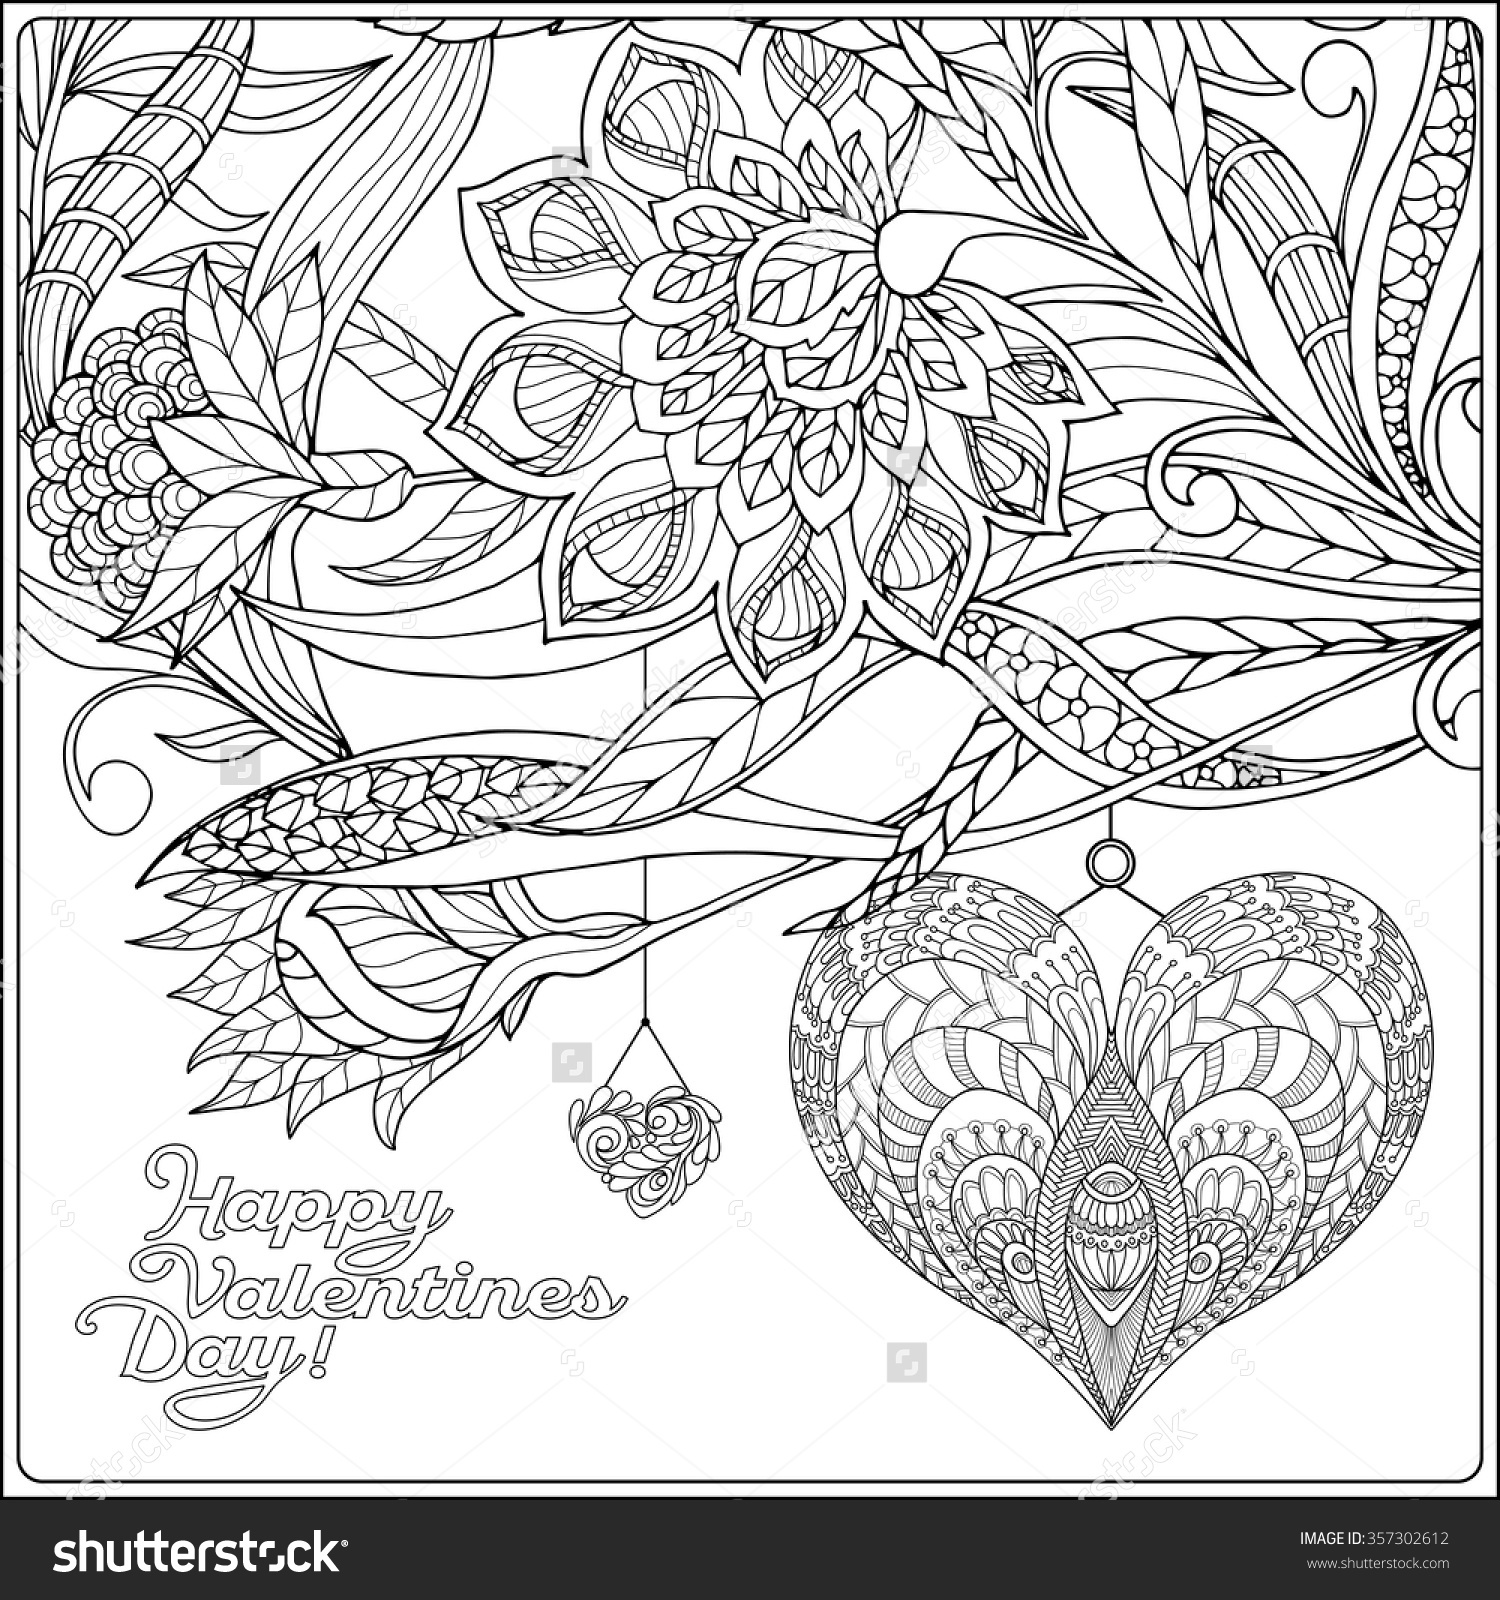 Free Printable Valentines Day Coloring Pages For Adults At